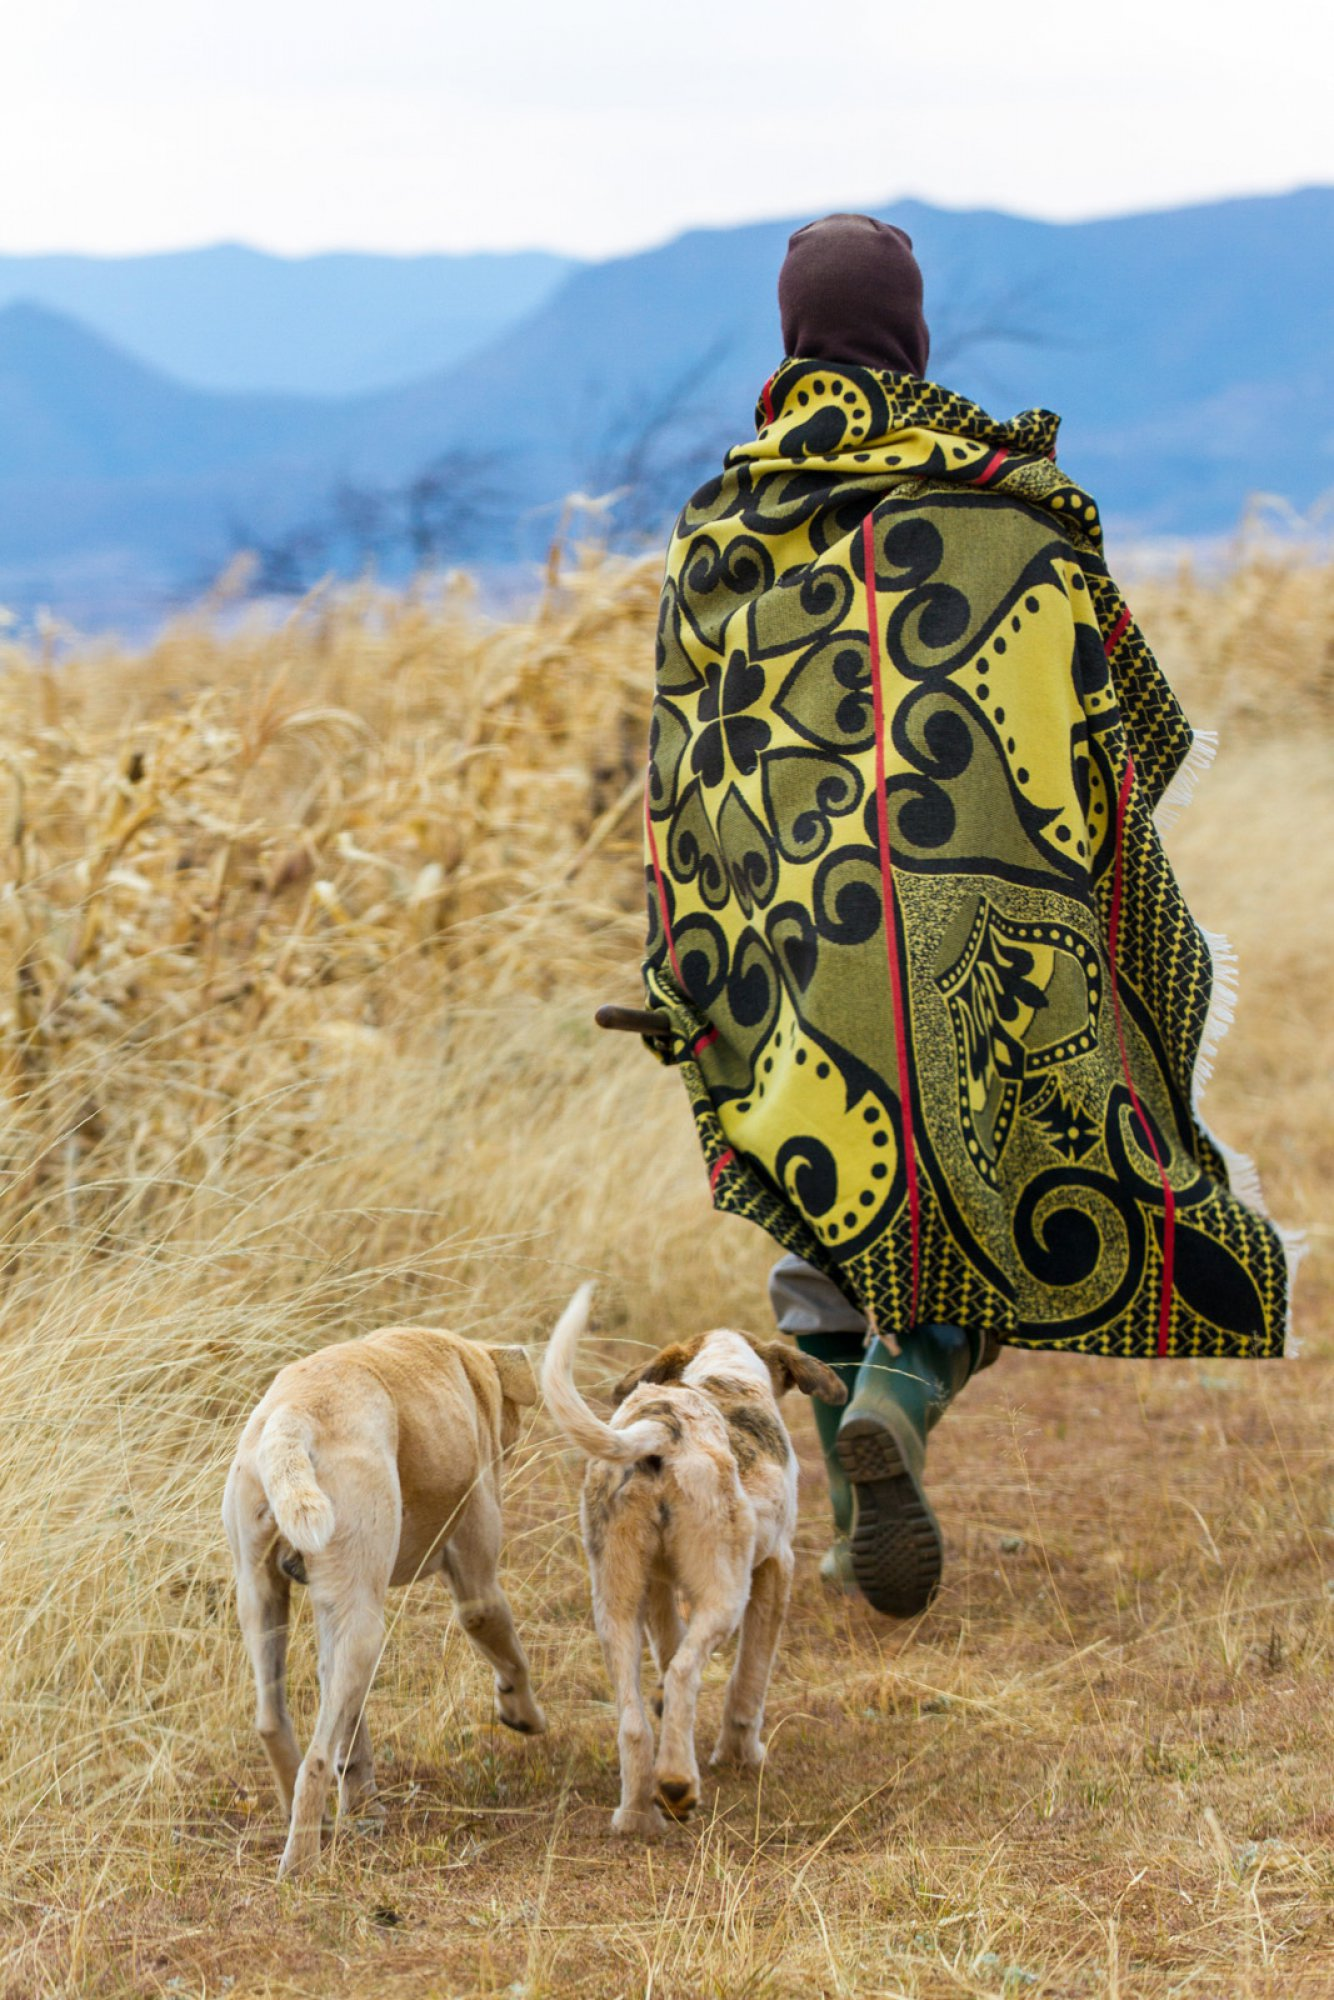 https://bubo.sk/uploads/galleries/4972/lesotho-unidentified-basotho-man-with-2-dogs-wearing-traditional-blanket-lesotho.jpg